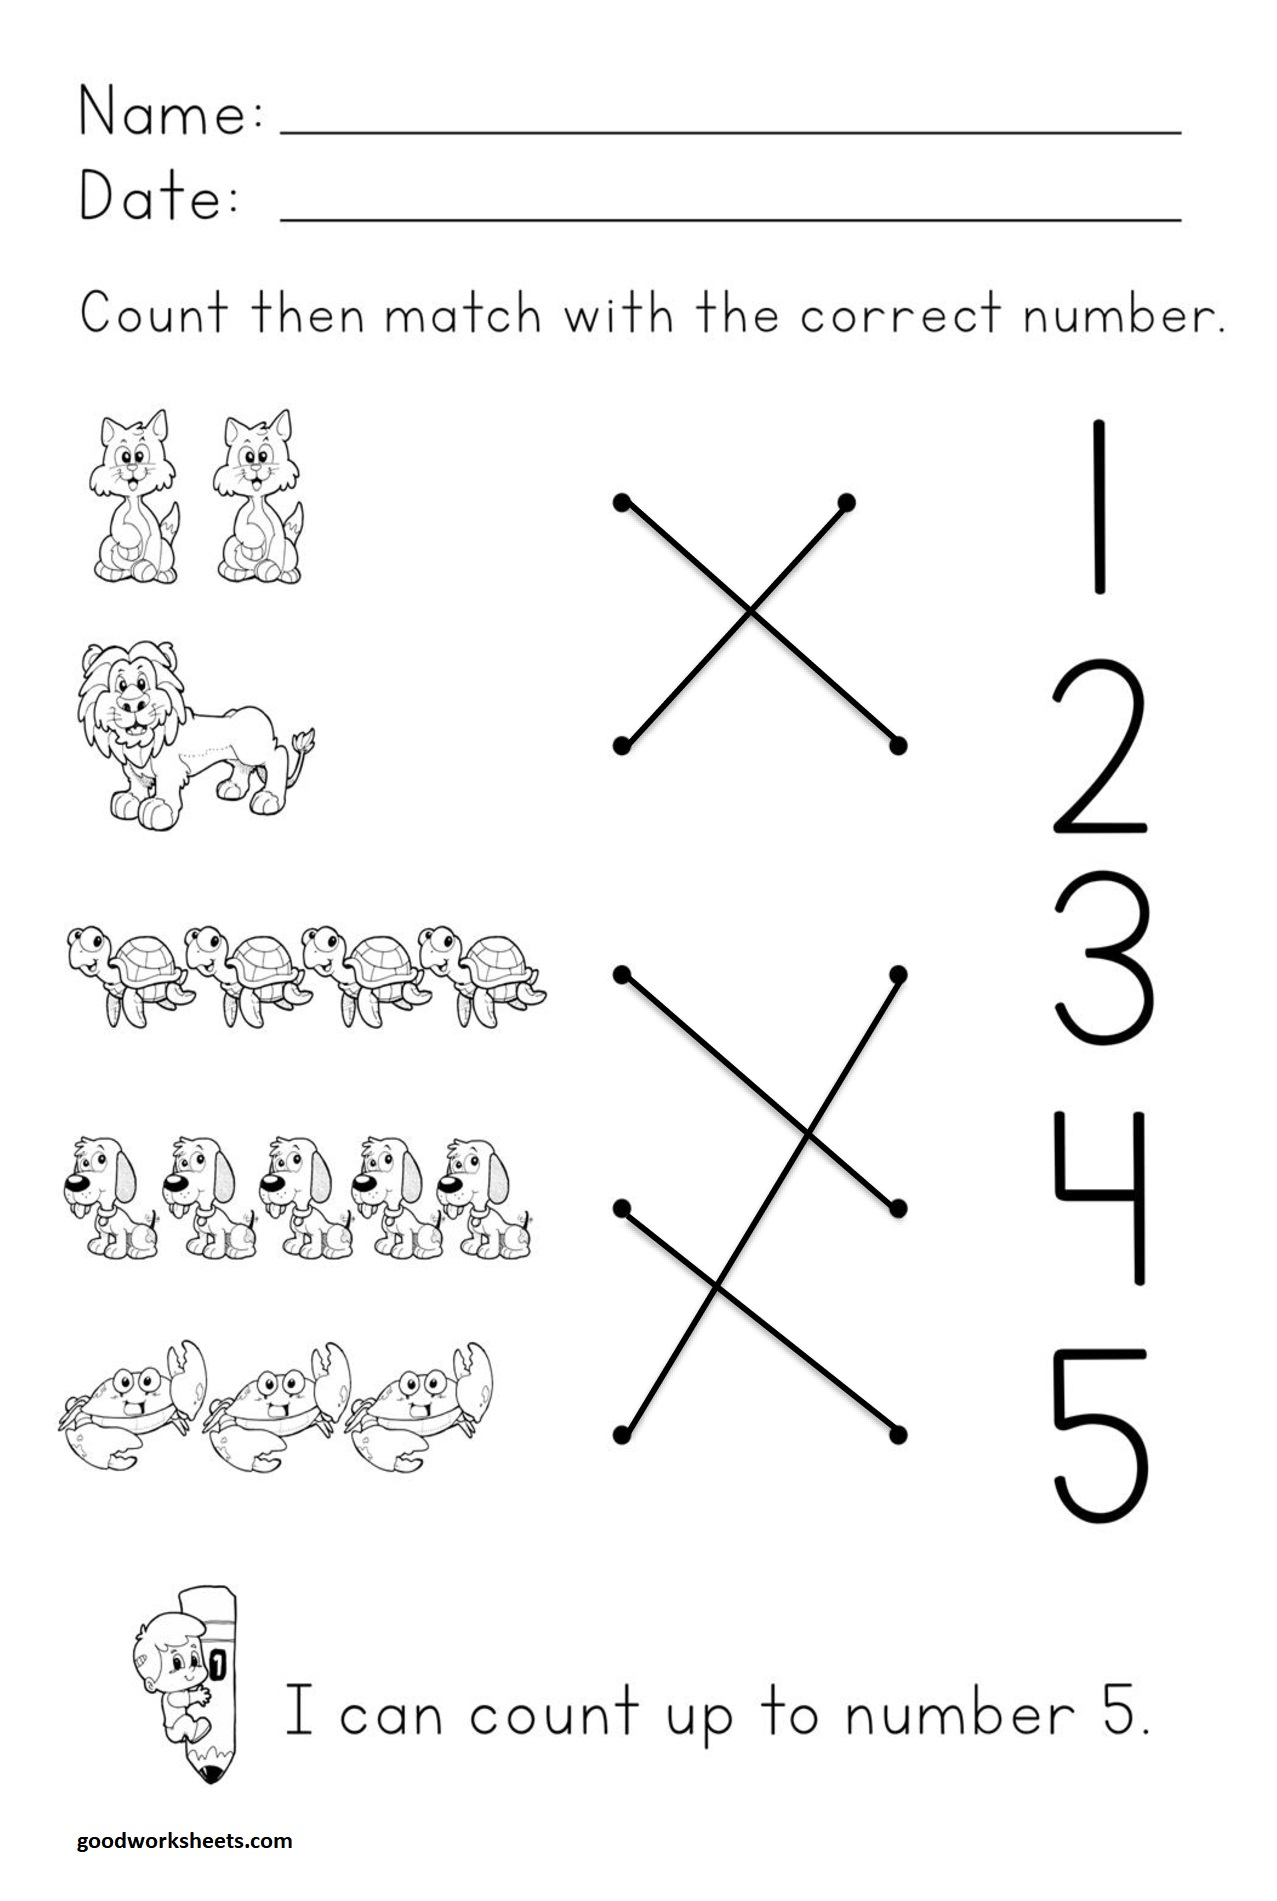 Number Concepts Worksheets Answer Key